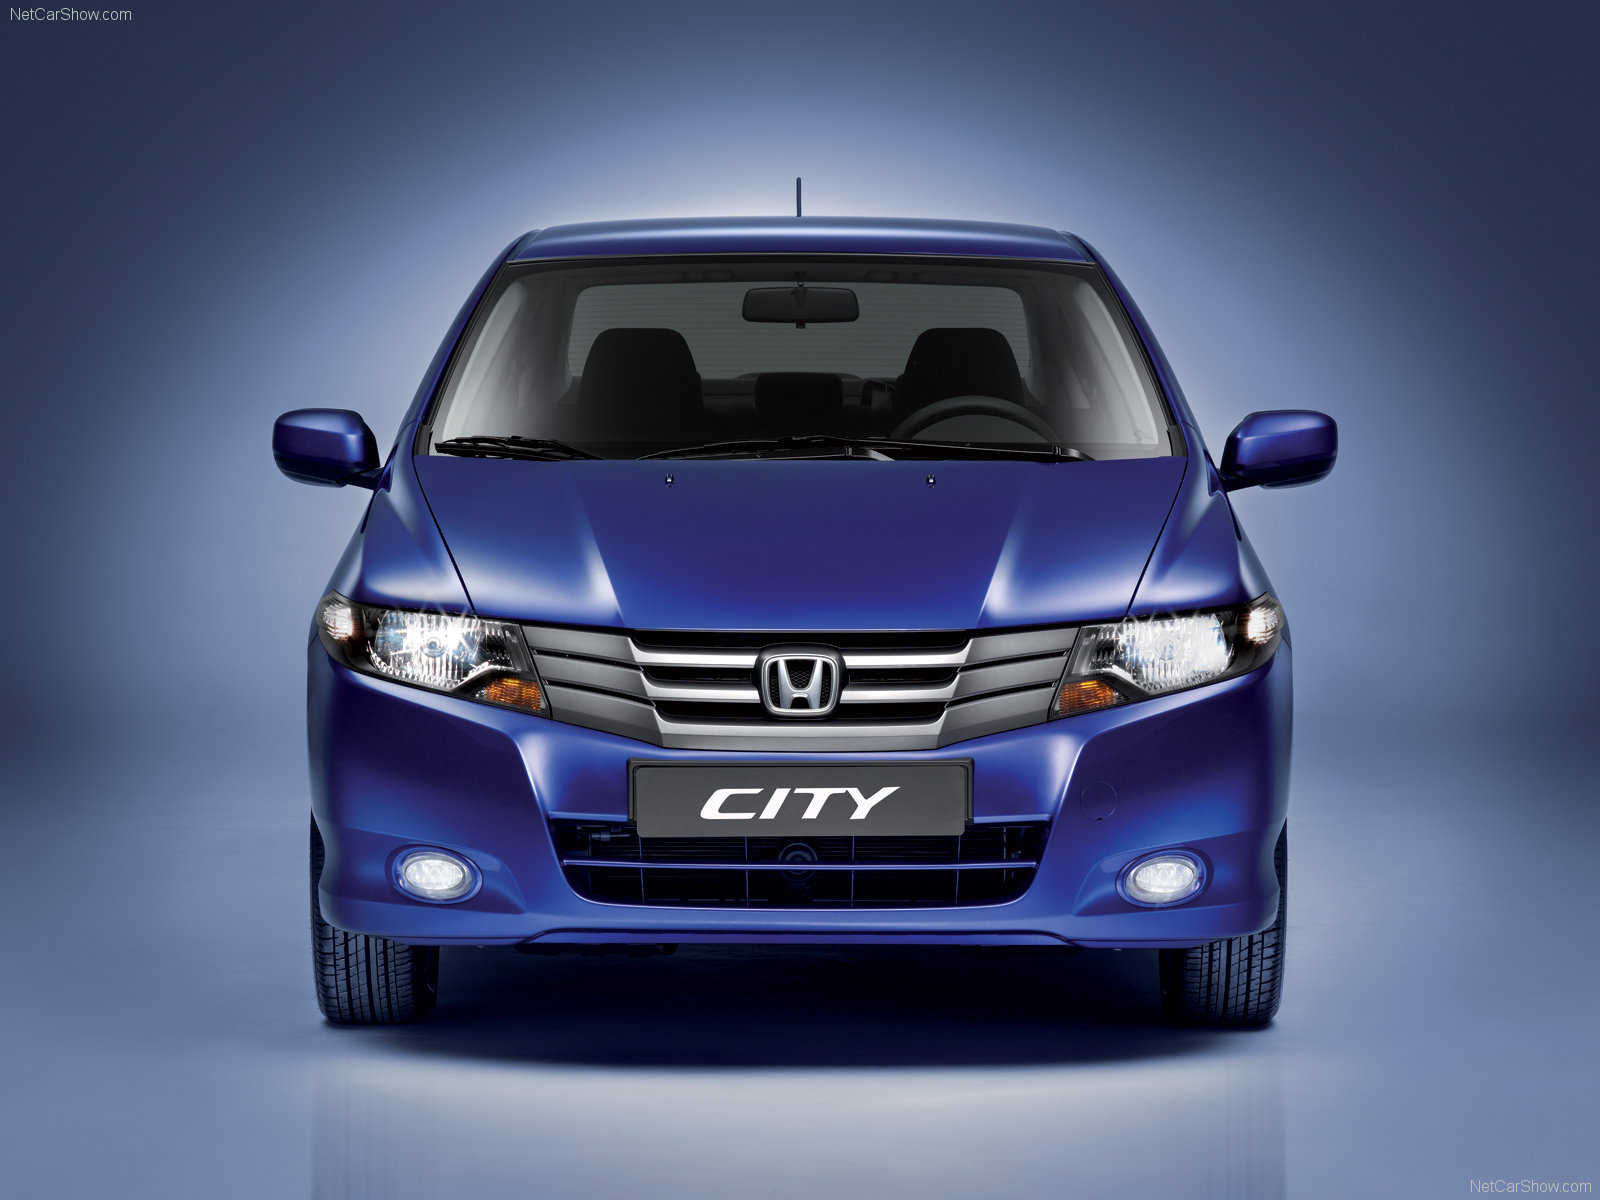 Honda City photo #58266